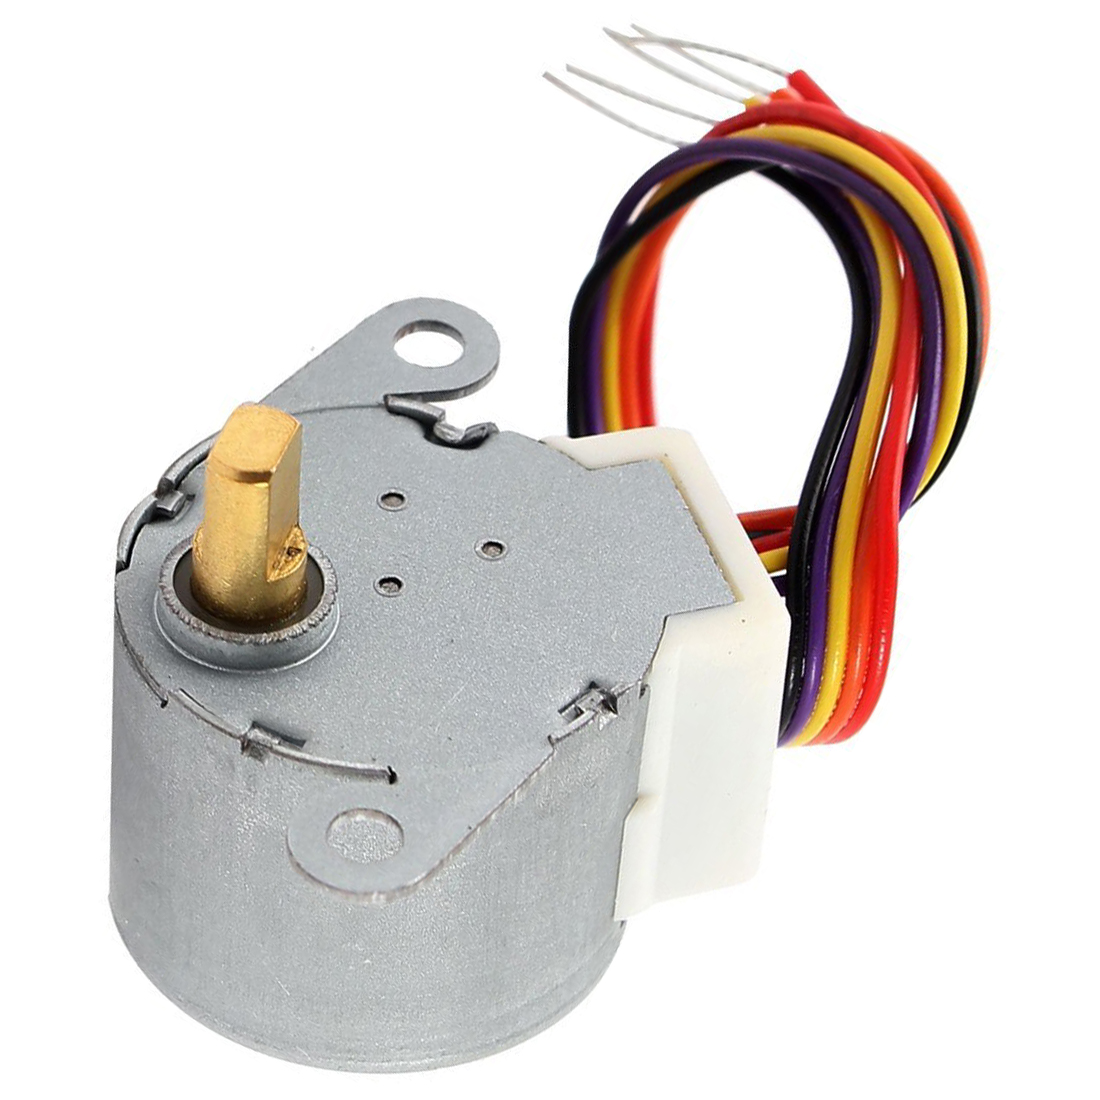 BHBD Hot <font><b>DC</b></font> <font><b>12V</b></font> CNC Reducing Stepping Stepper Motor 0.6A 10oz.in <font><b>24BYJ48</b></font> Silver image